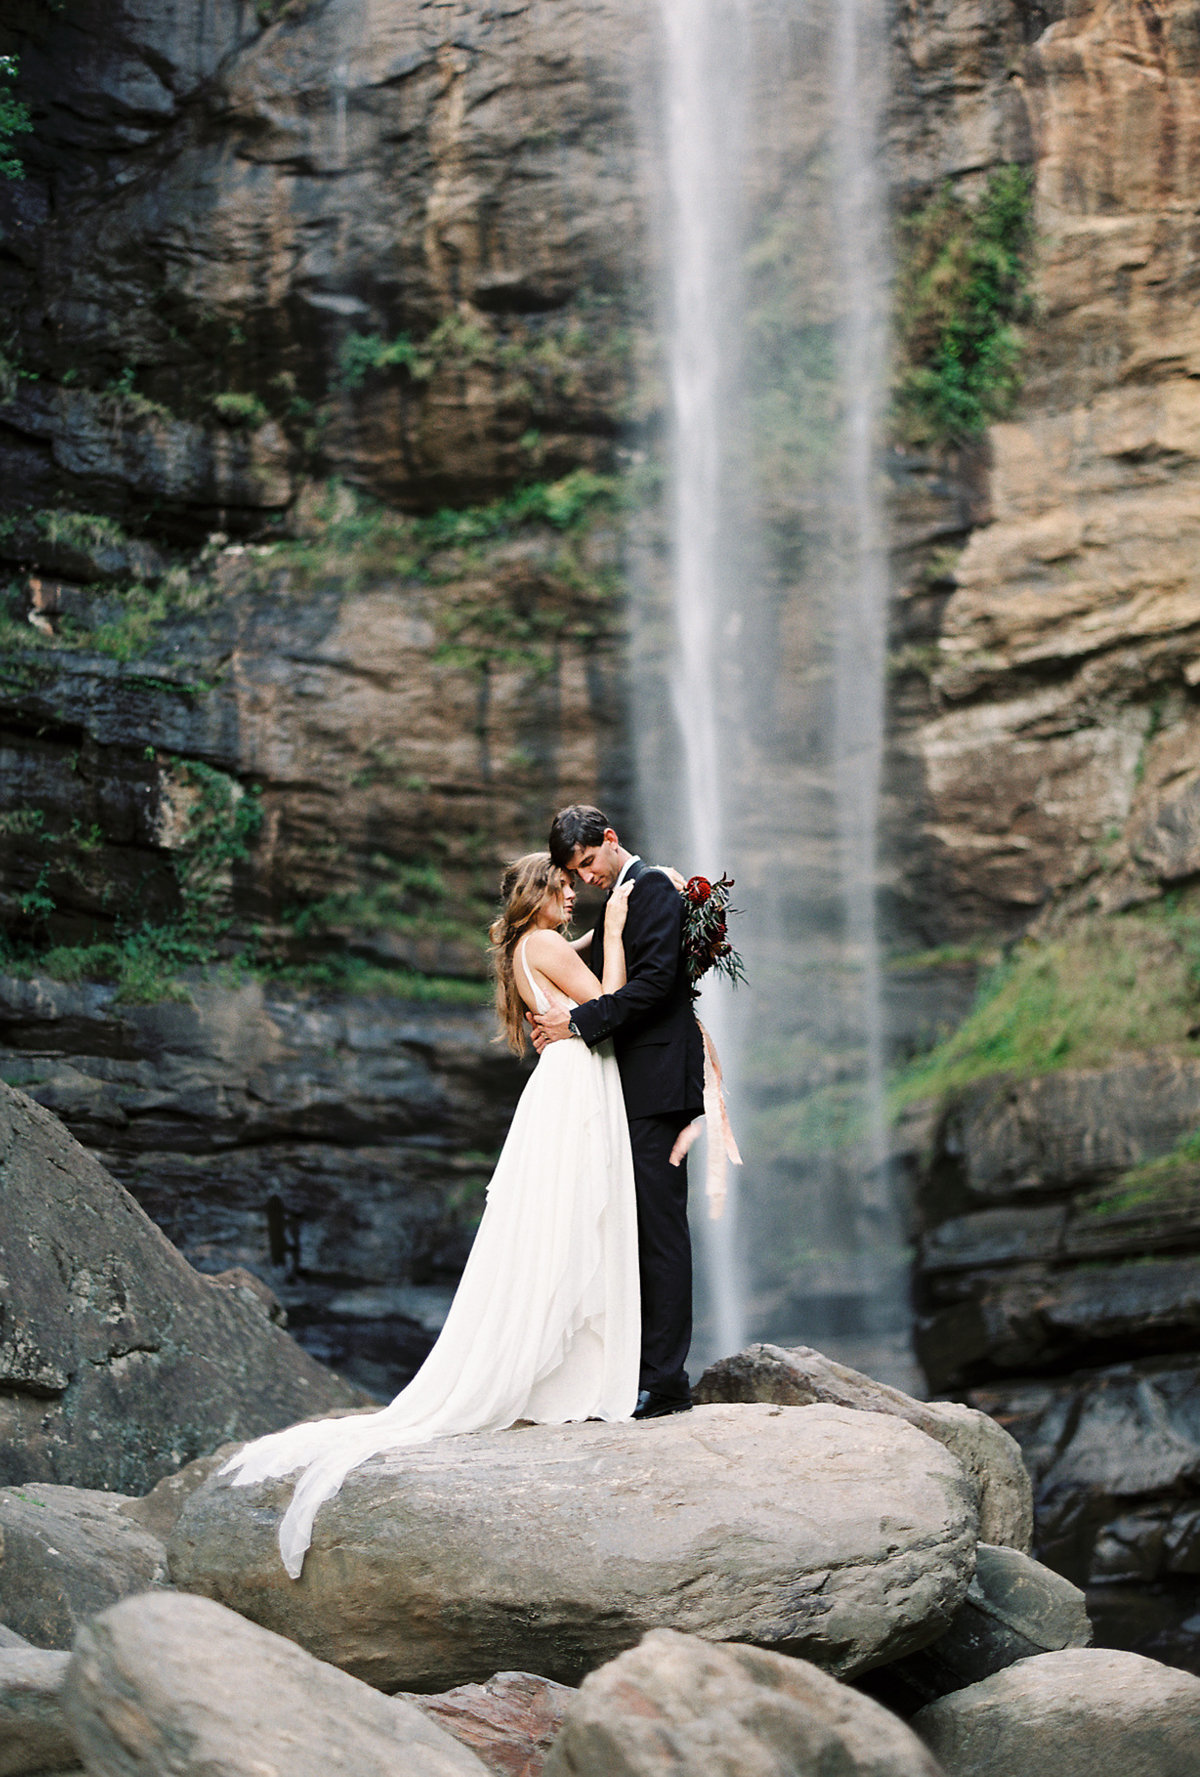 toccoa-falls-anniversary-session-melanie-gabrielle-photography-101